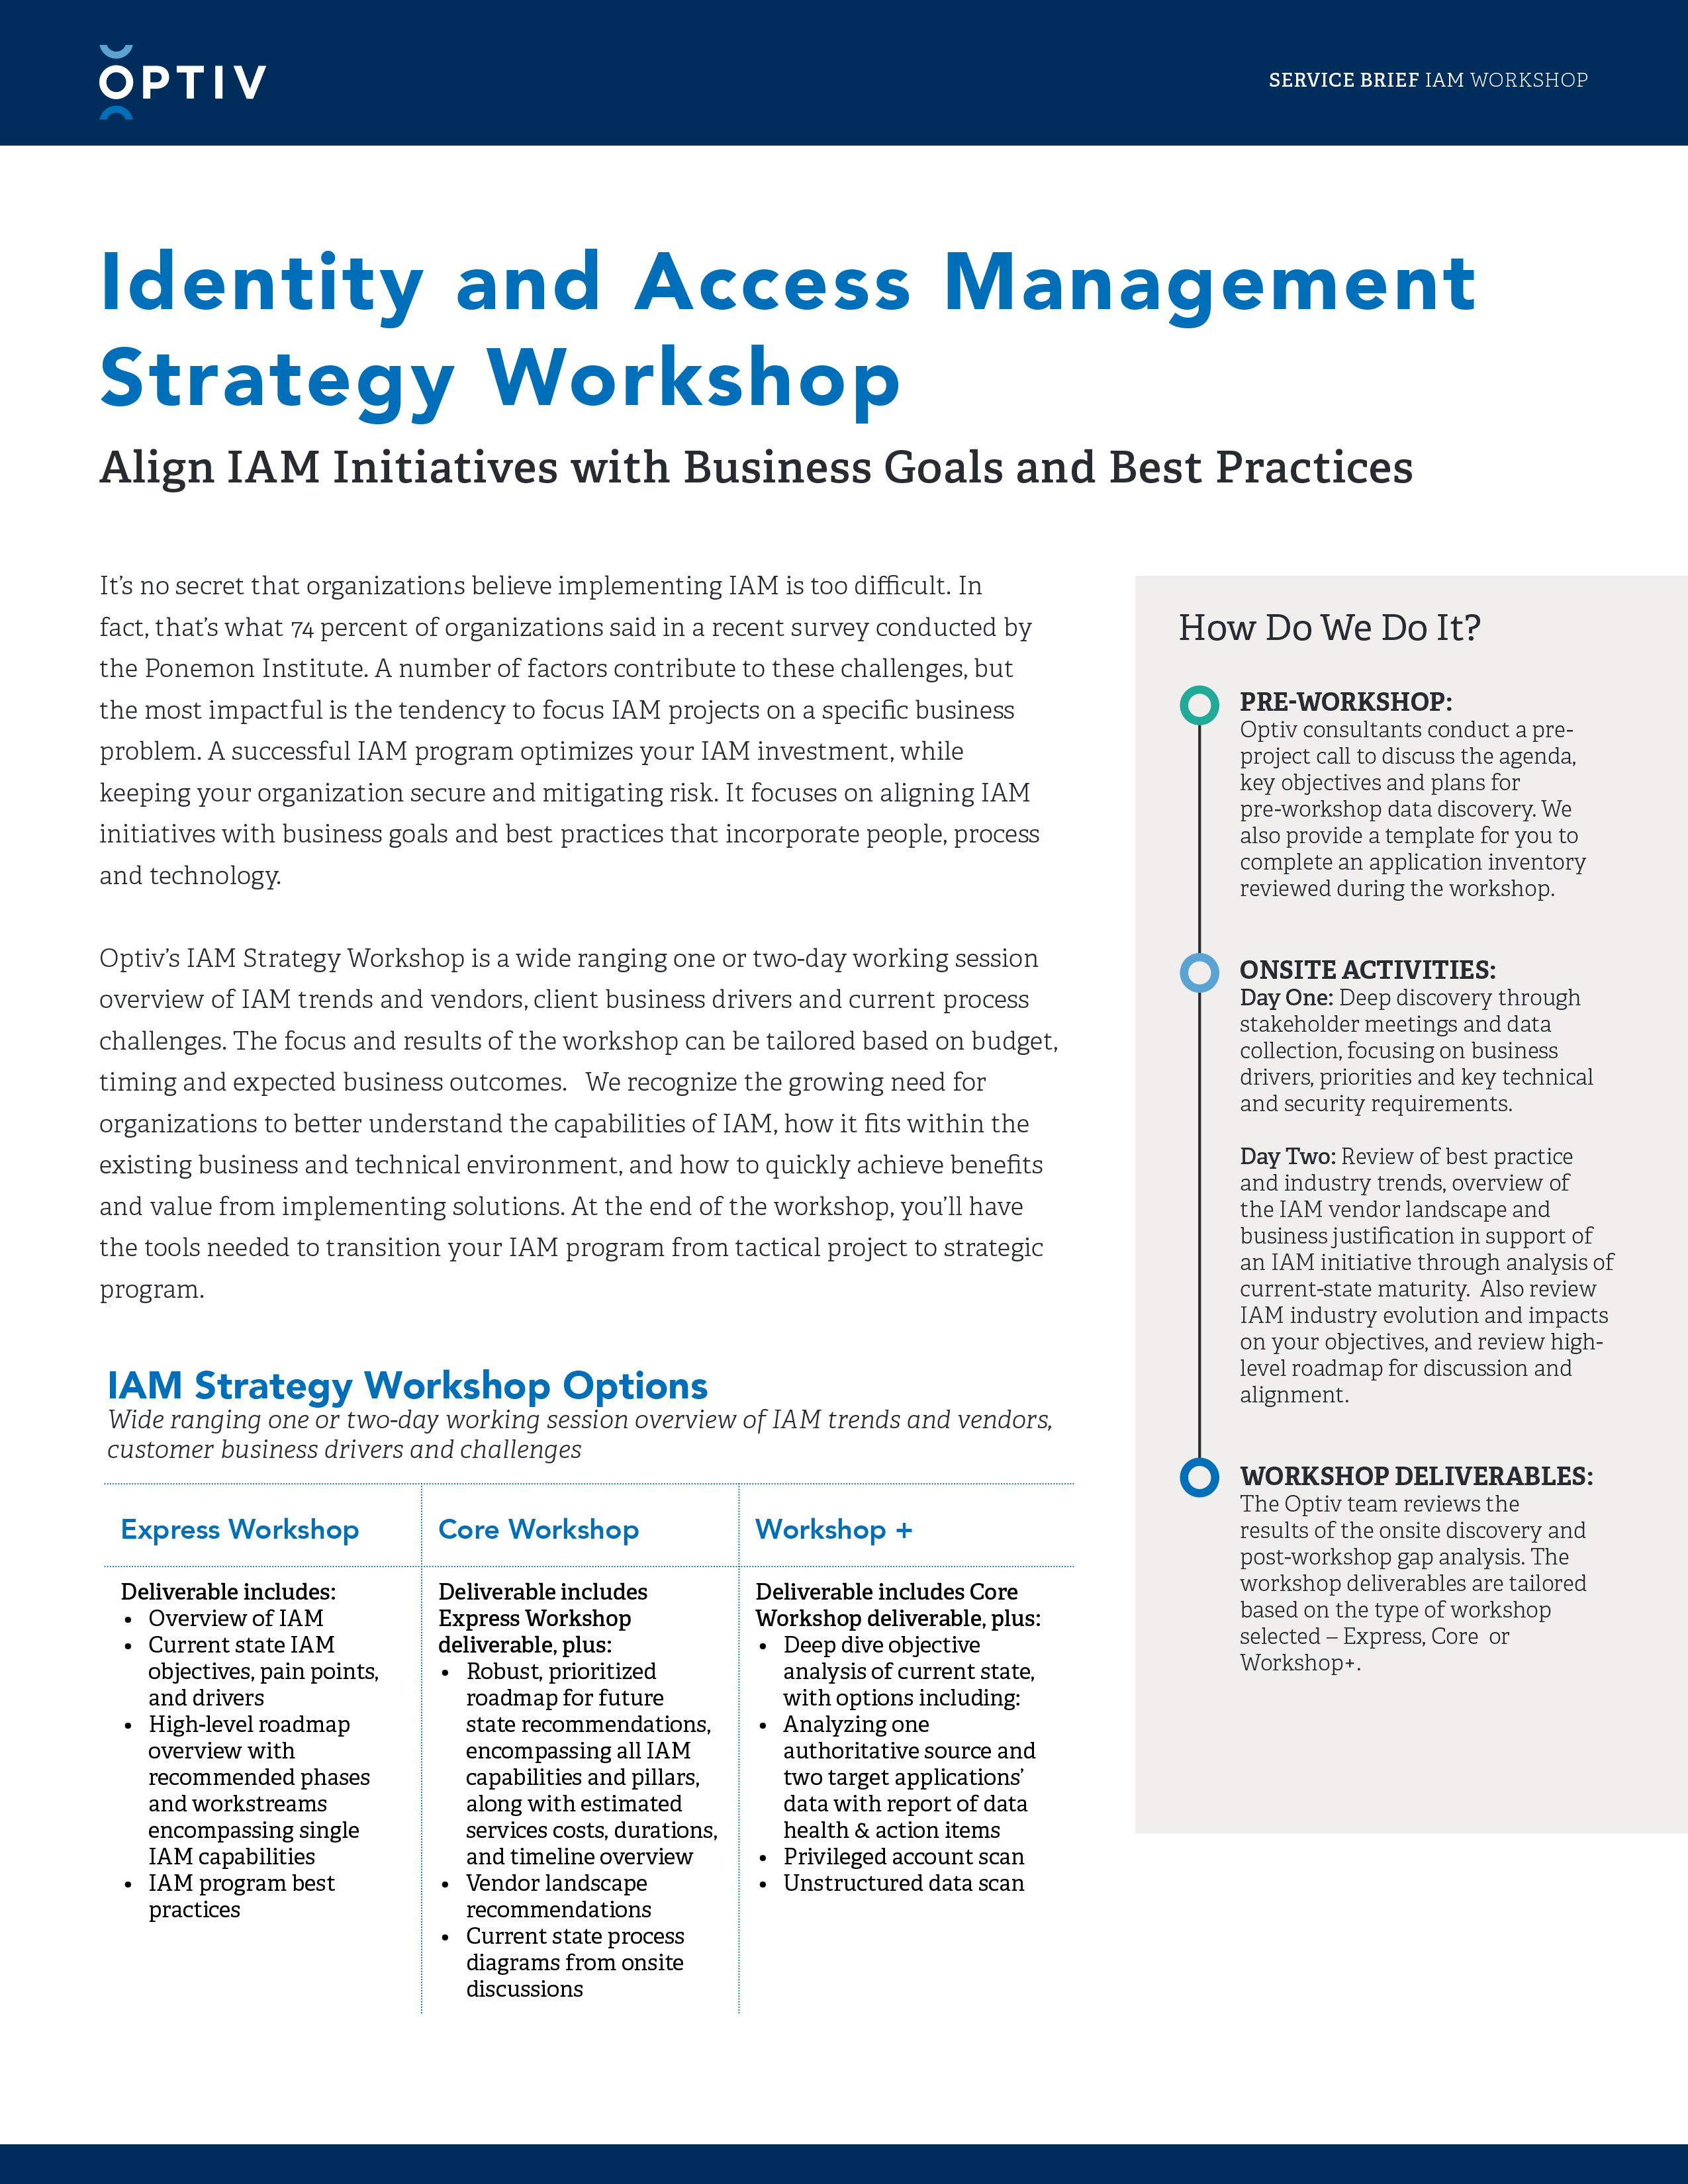 Identity and Access Management Strategy Workshop